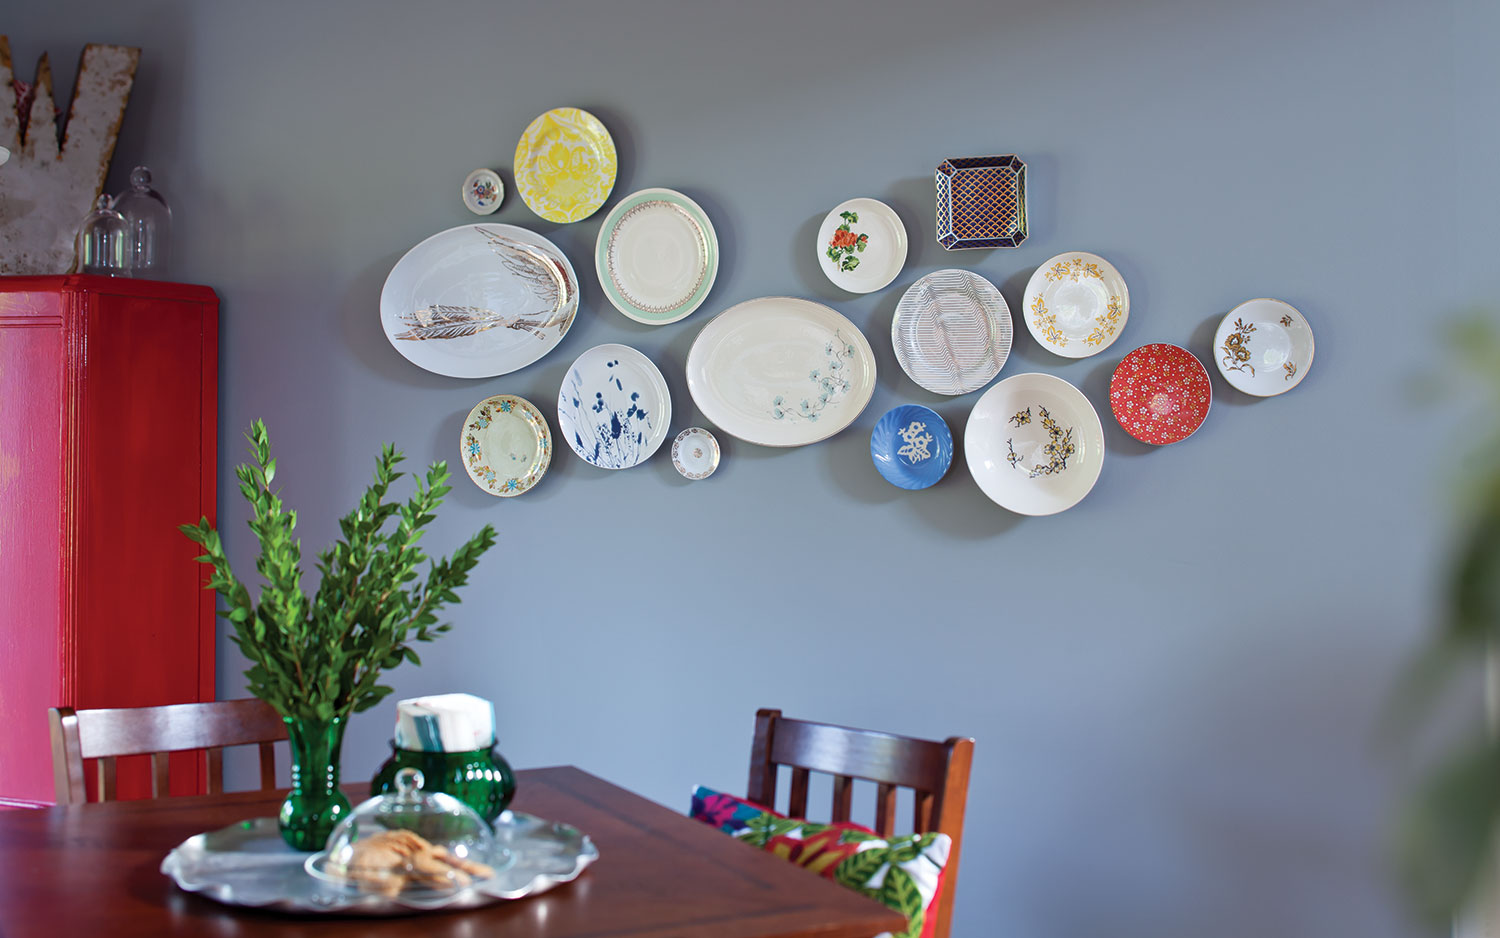 A picture of a wall grouping of plates